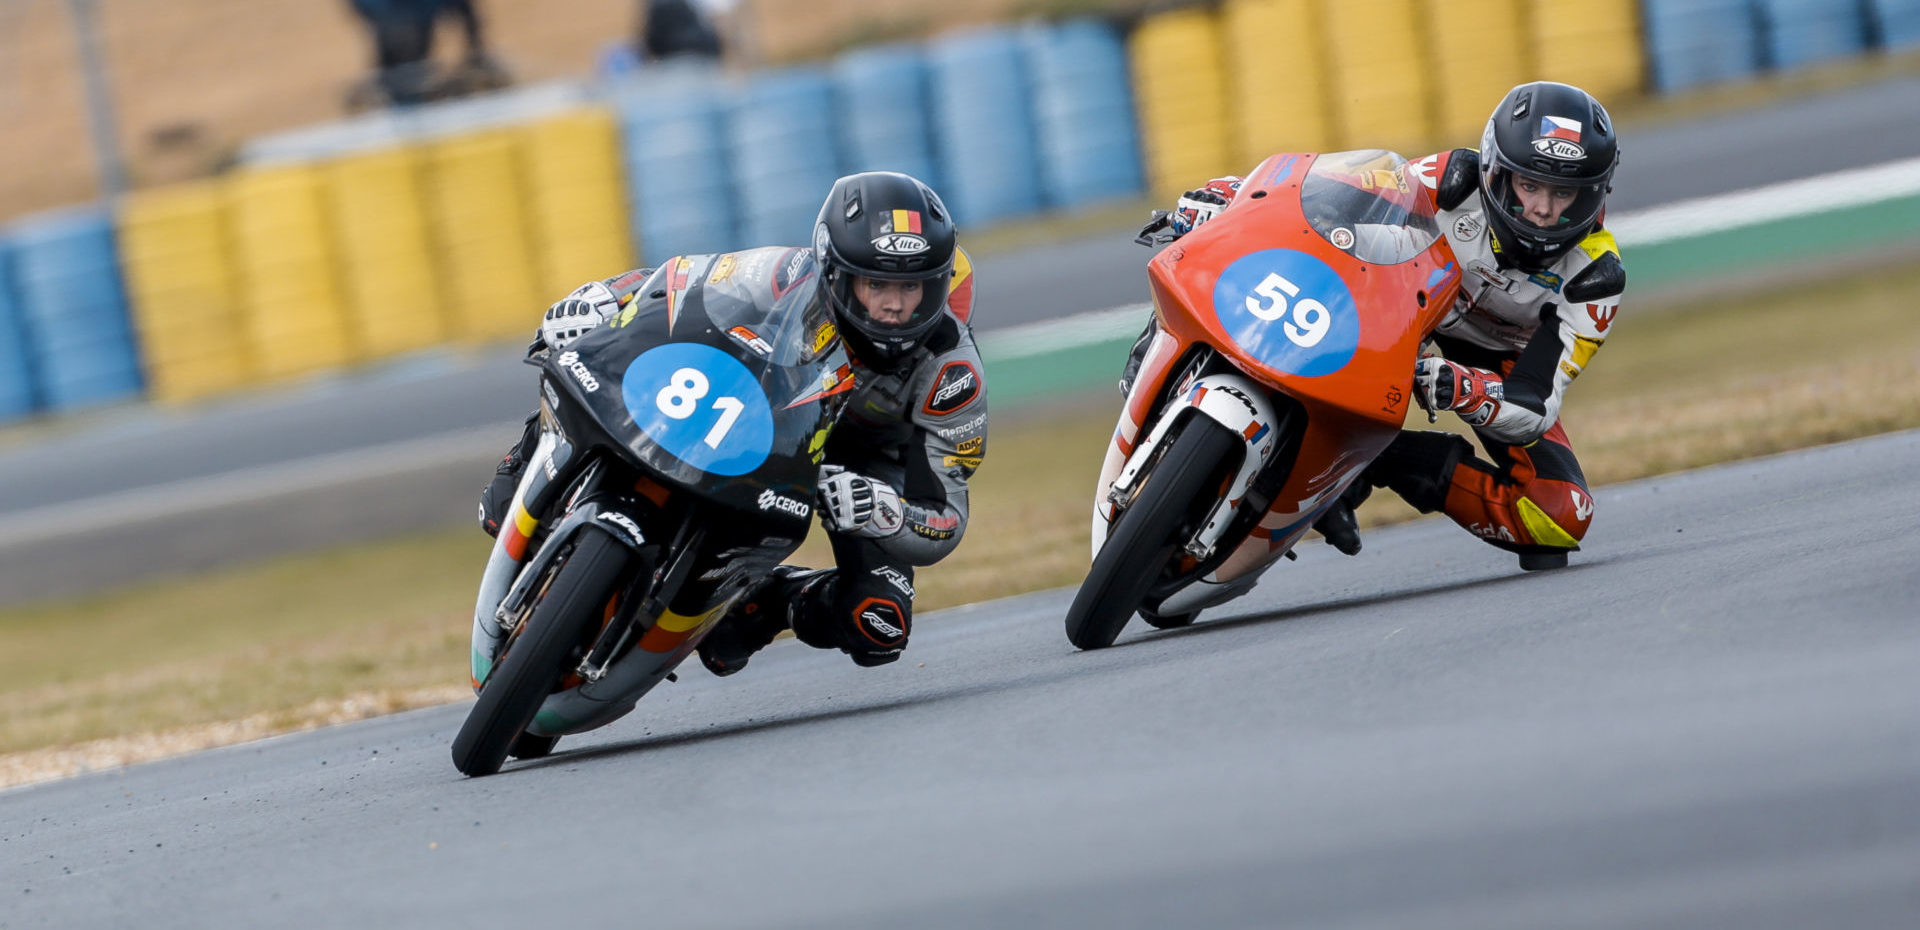 Lorenz Luciano (81) and Jakub Gurecky (59) are tied for the points lead in the Northern Talent Cup Championship heading into the Oschersleben round. Photo courtesy Dorna.